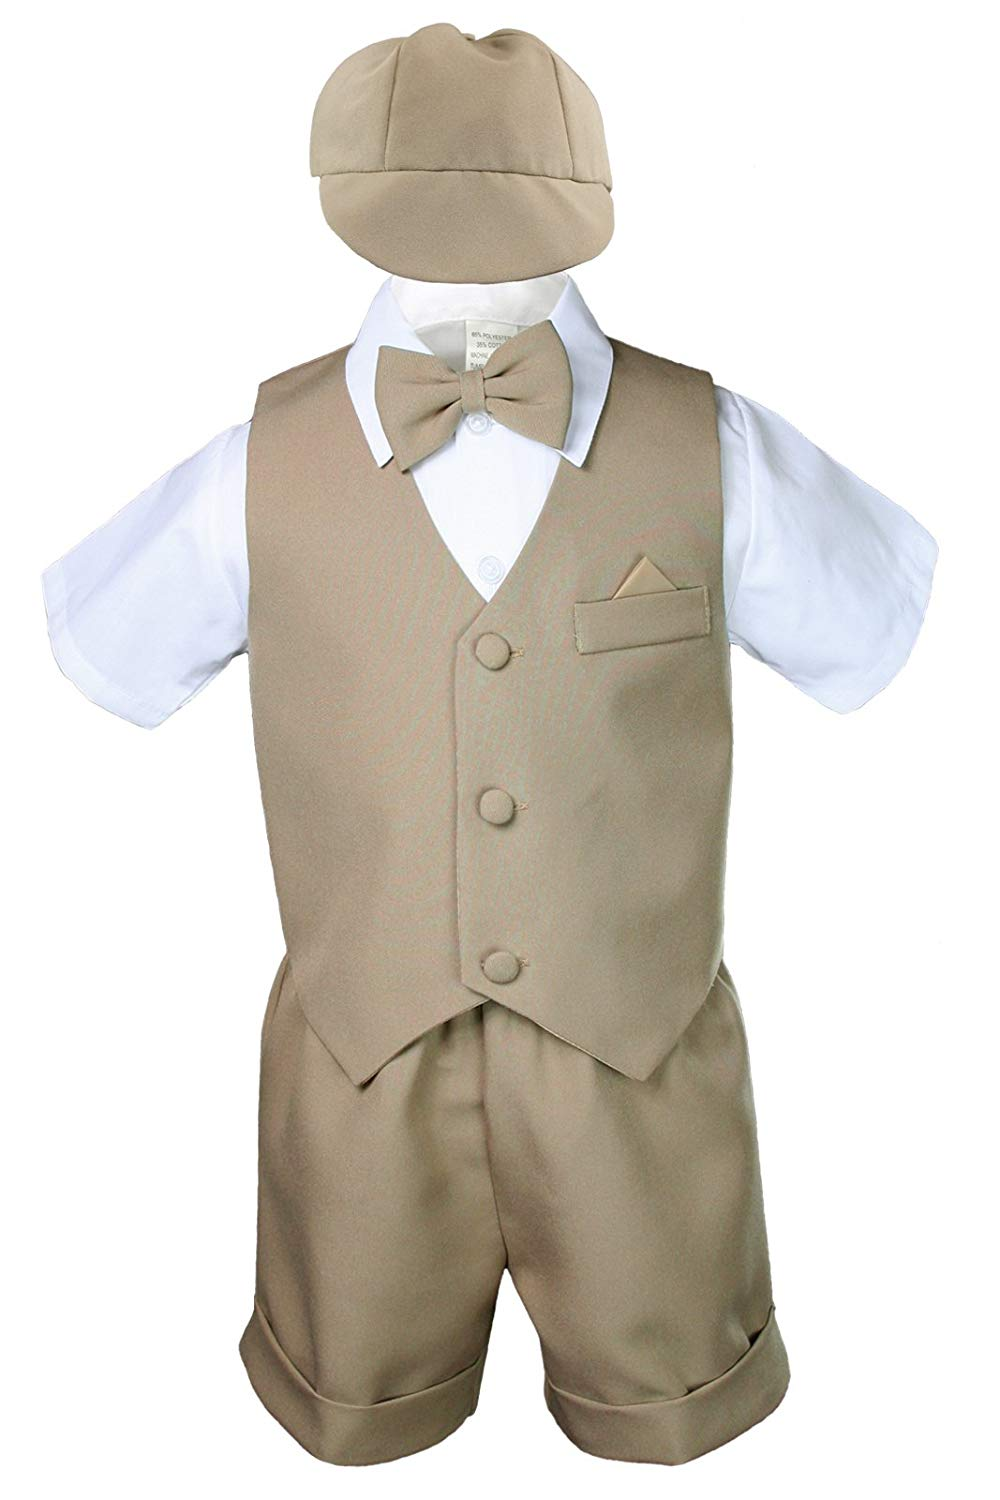 07e38cab4 Get Quotations · Unotux Khaki Infant Boys Toddler Eton 5 Piece Formal Vest  Shorts Sets Suits S-4T